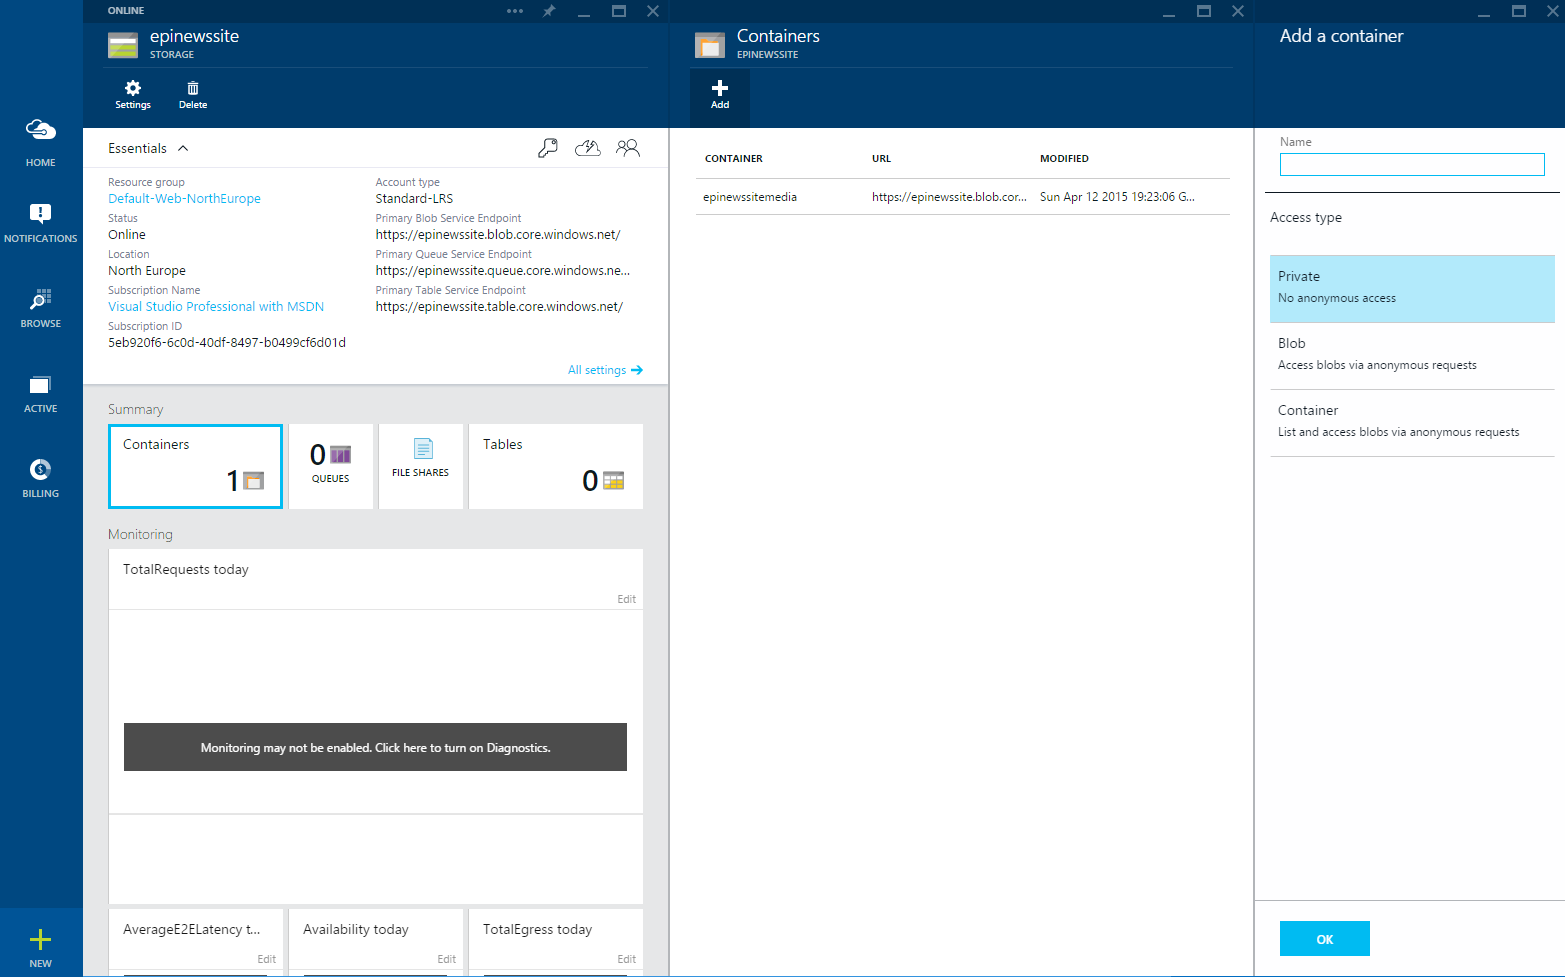 Azure new Storage container view